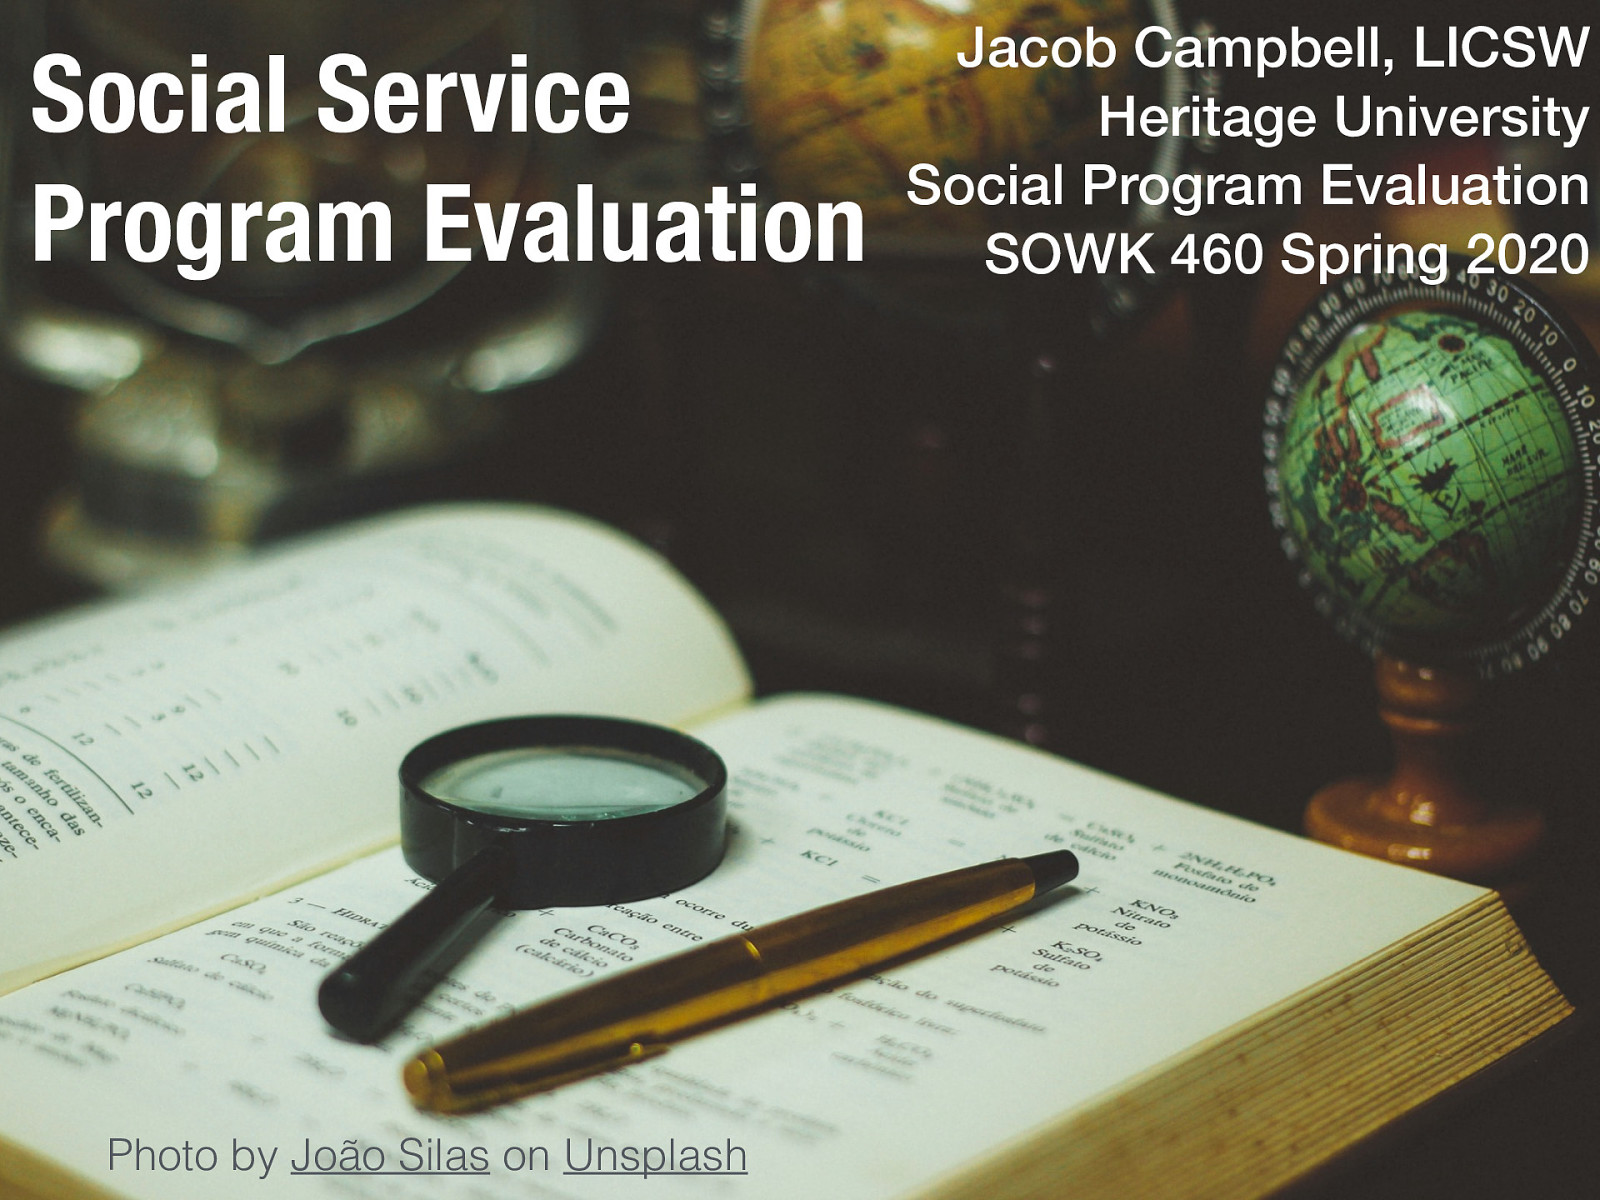 Week 01 - Social Service Program Evaluation